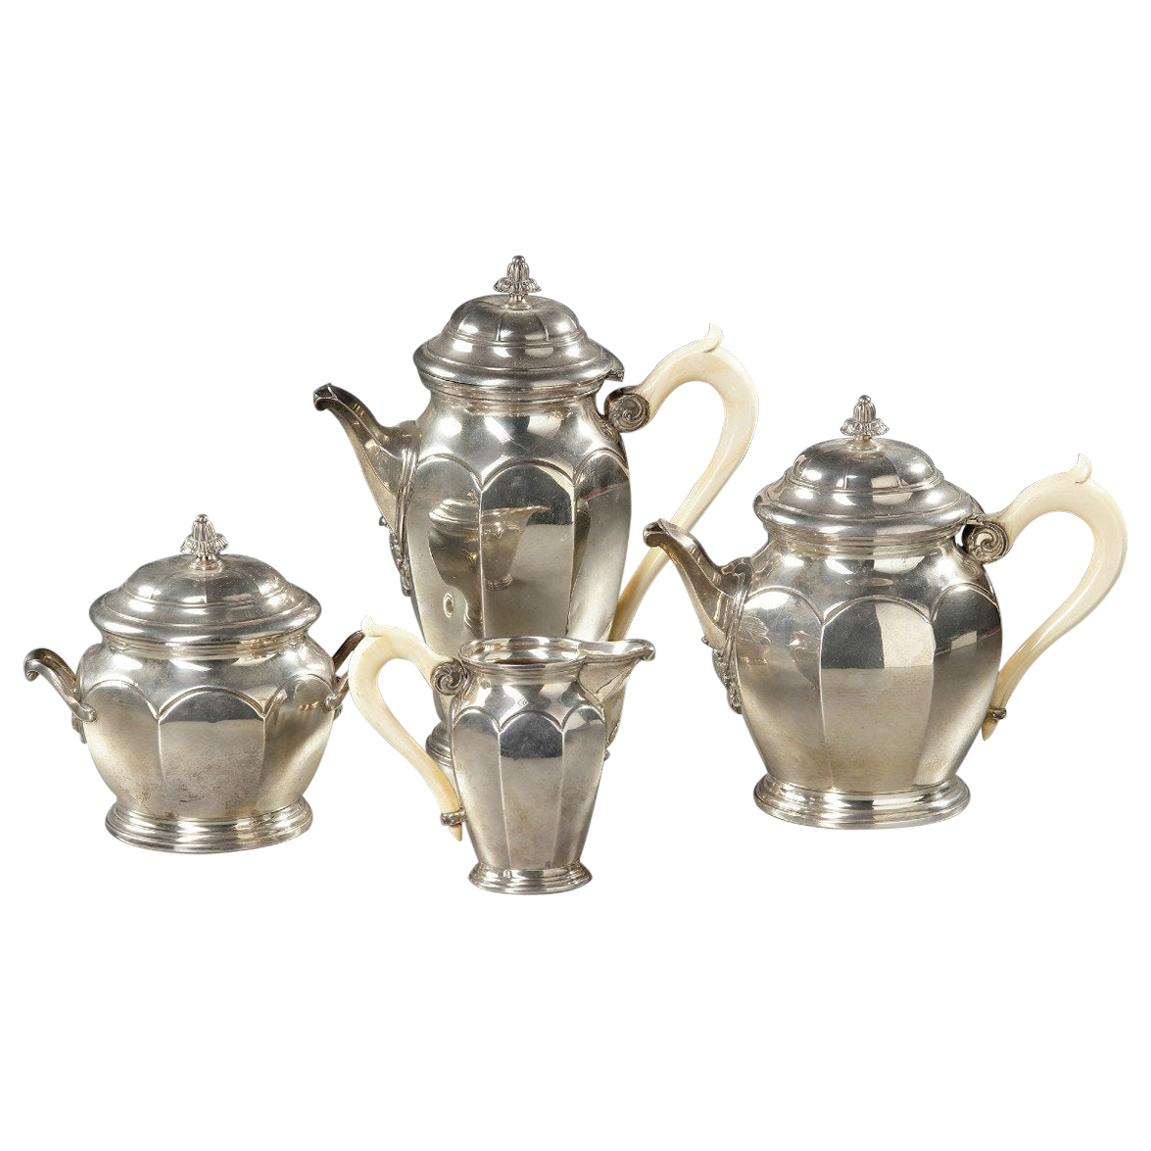 Solid Silver Tea and Coffee Service, 19th Century